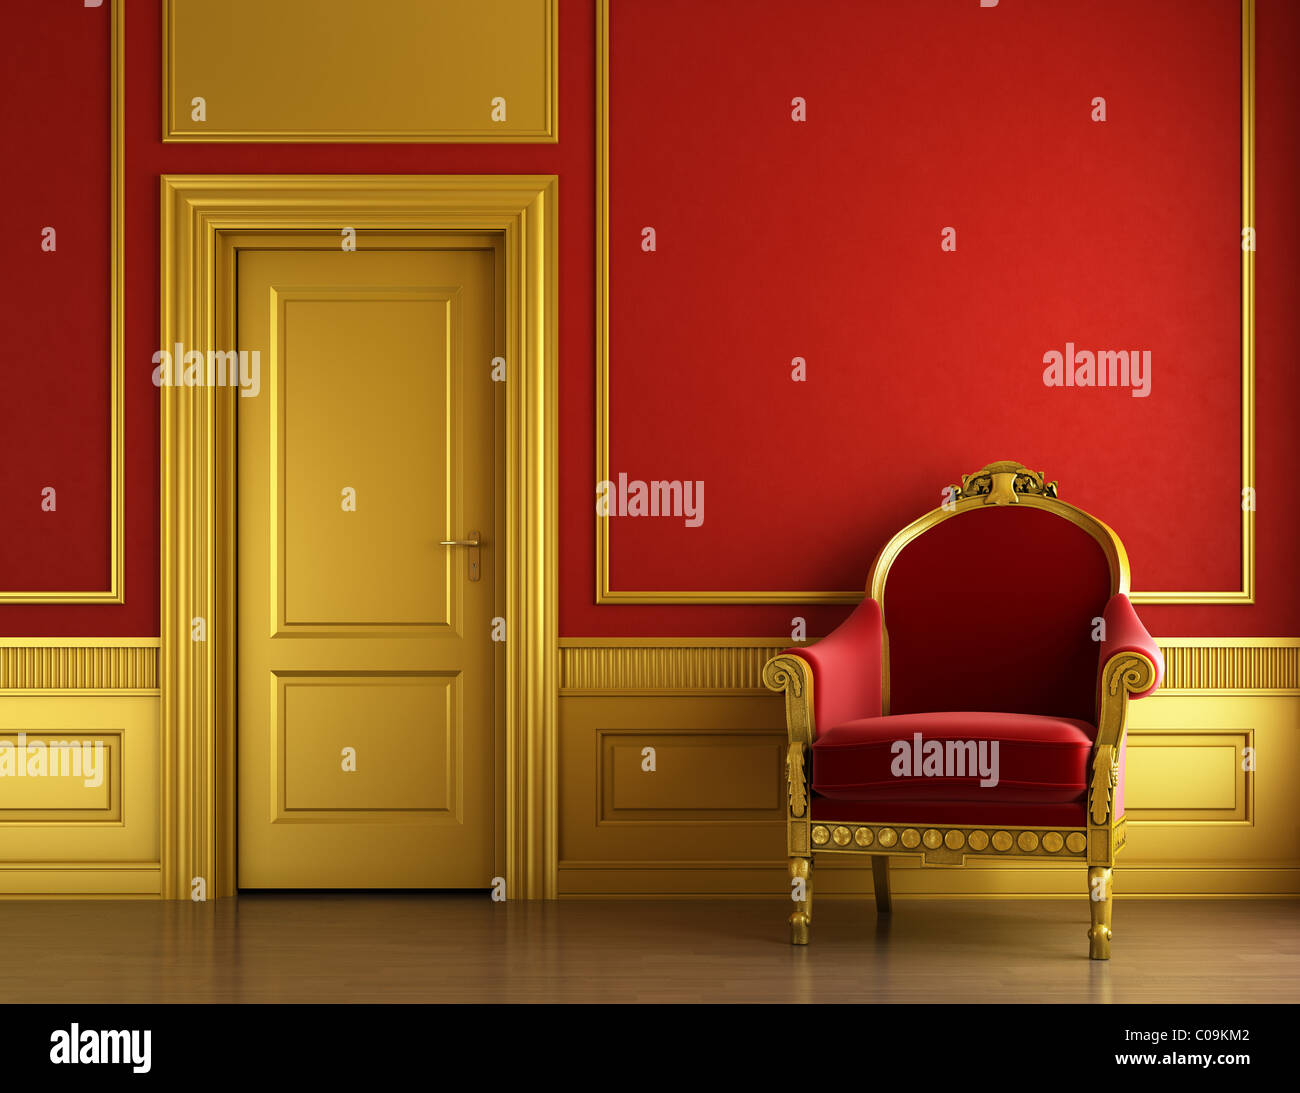 Charmant Interior Design Of Stylish Classic Room In Red And Golden ...